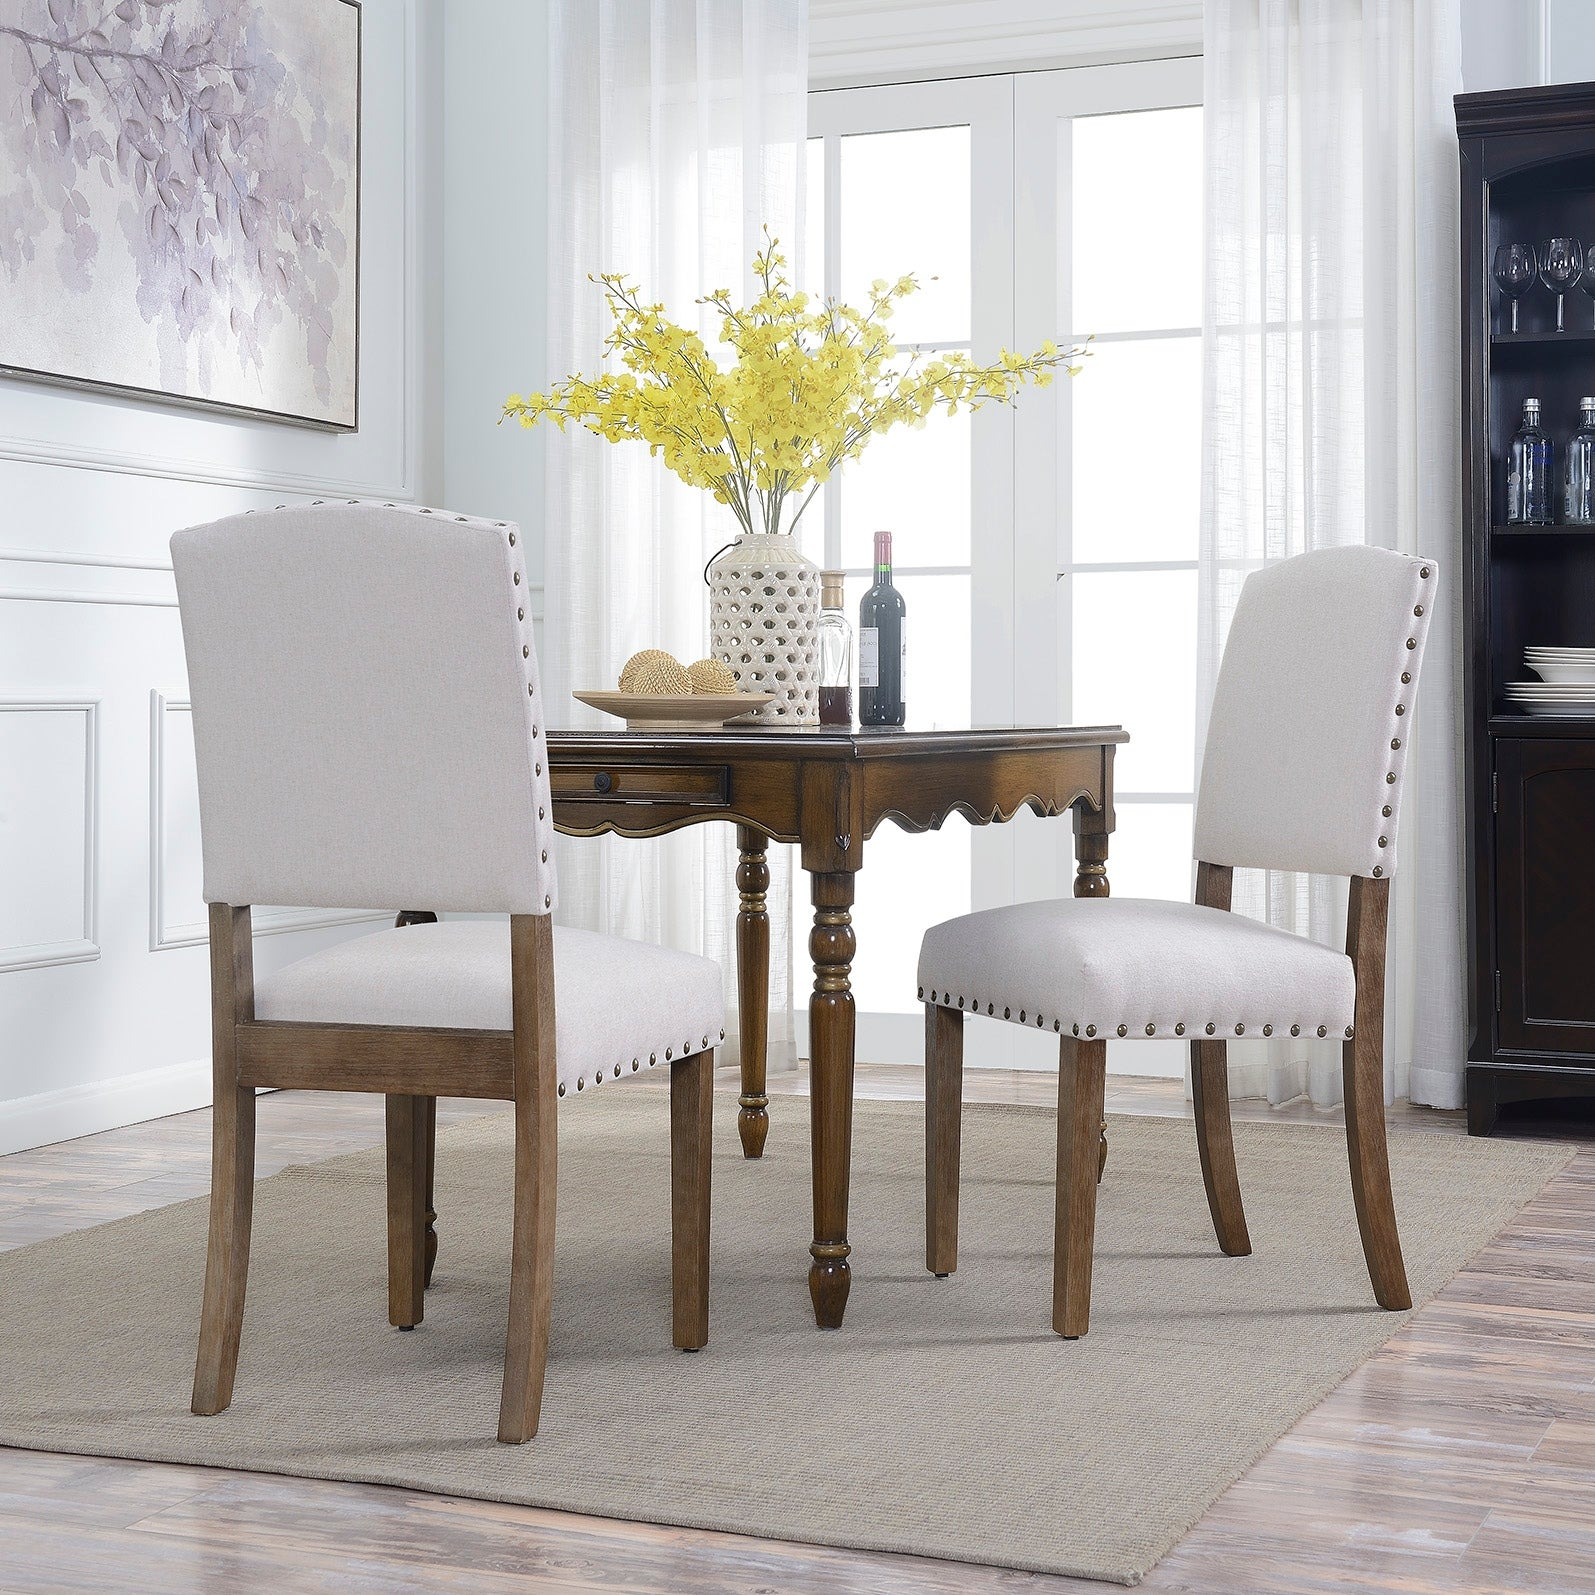 Belleze Contemporary Classic Dining Chair Set of (2) Linen Padded  Upholstered Nailhead Trim High Back Solid Wood Legs